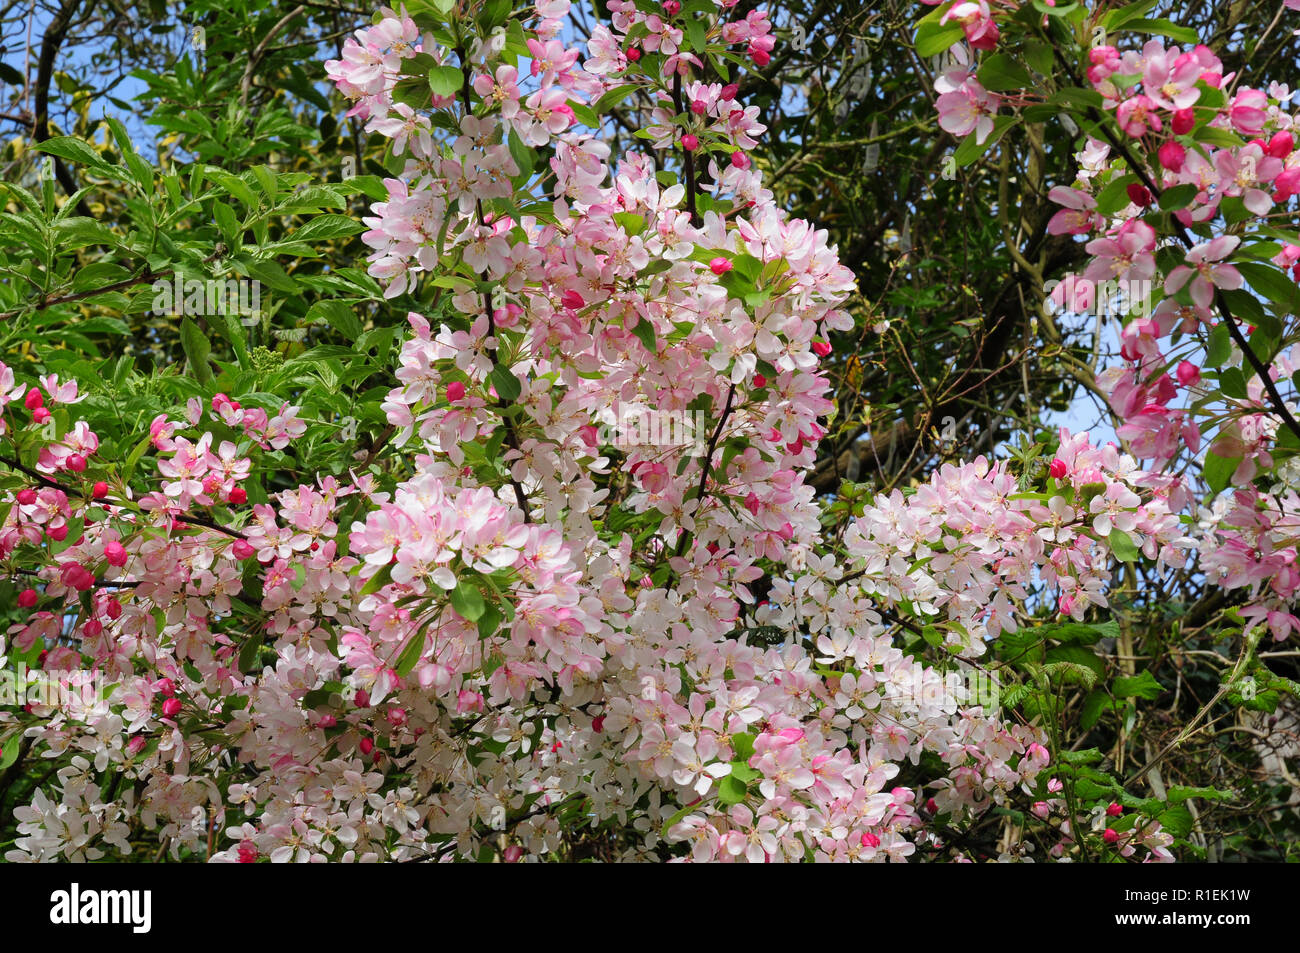 Flowers of wild crab apple, blooming in a hedgerow.Malus sylvestris - Stock Image